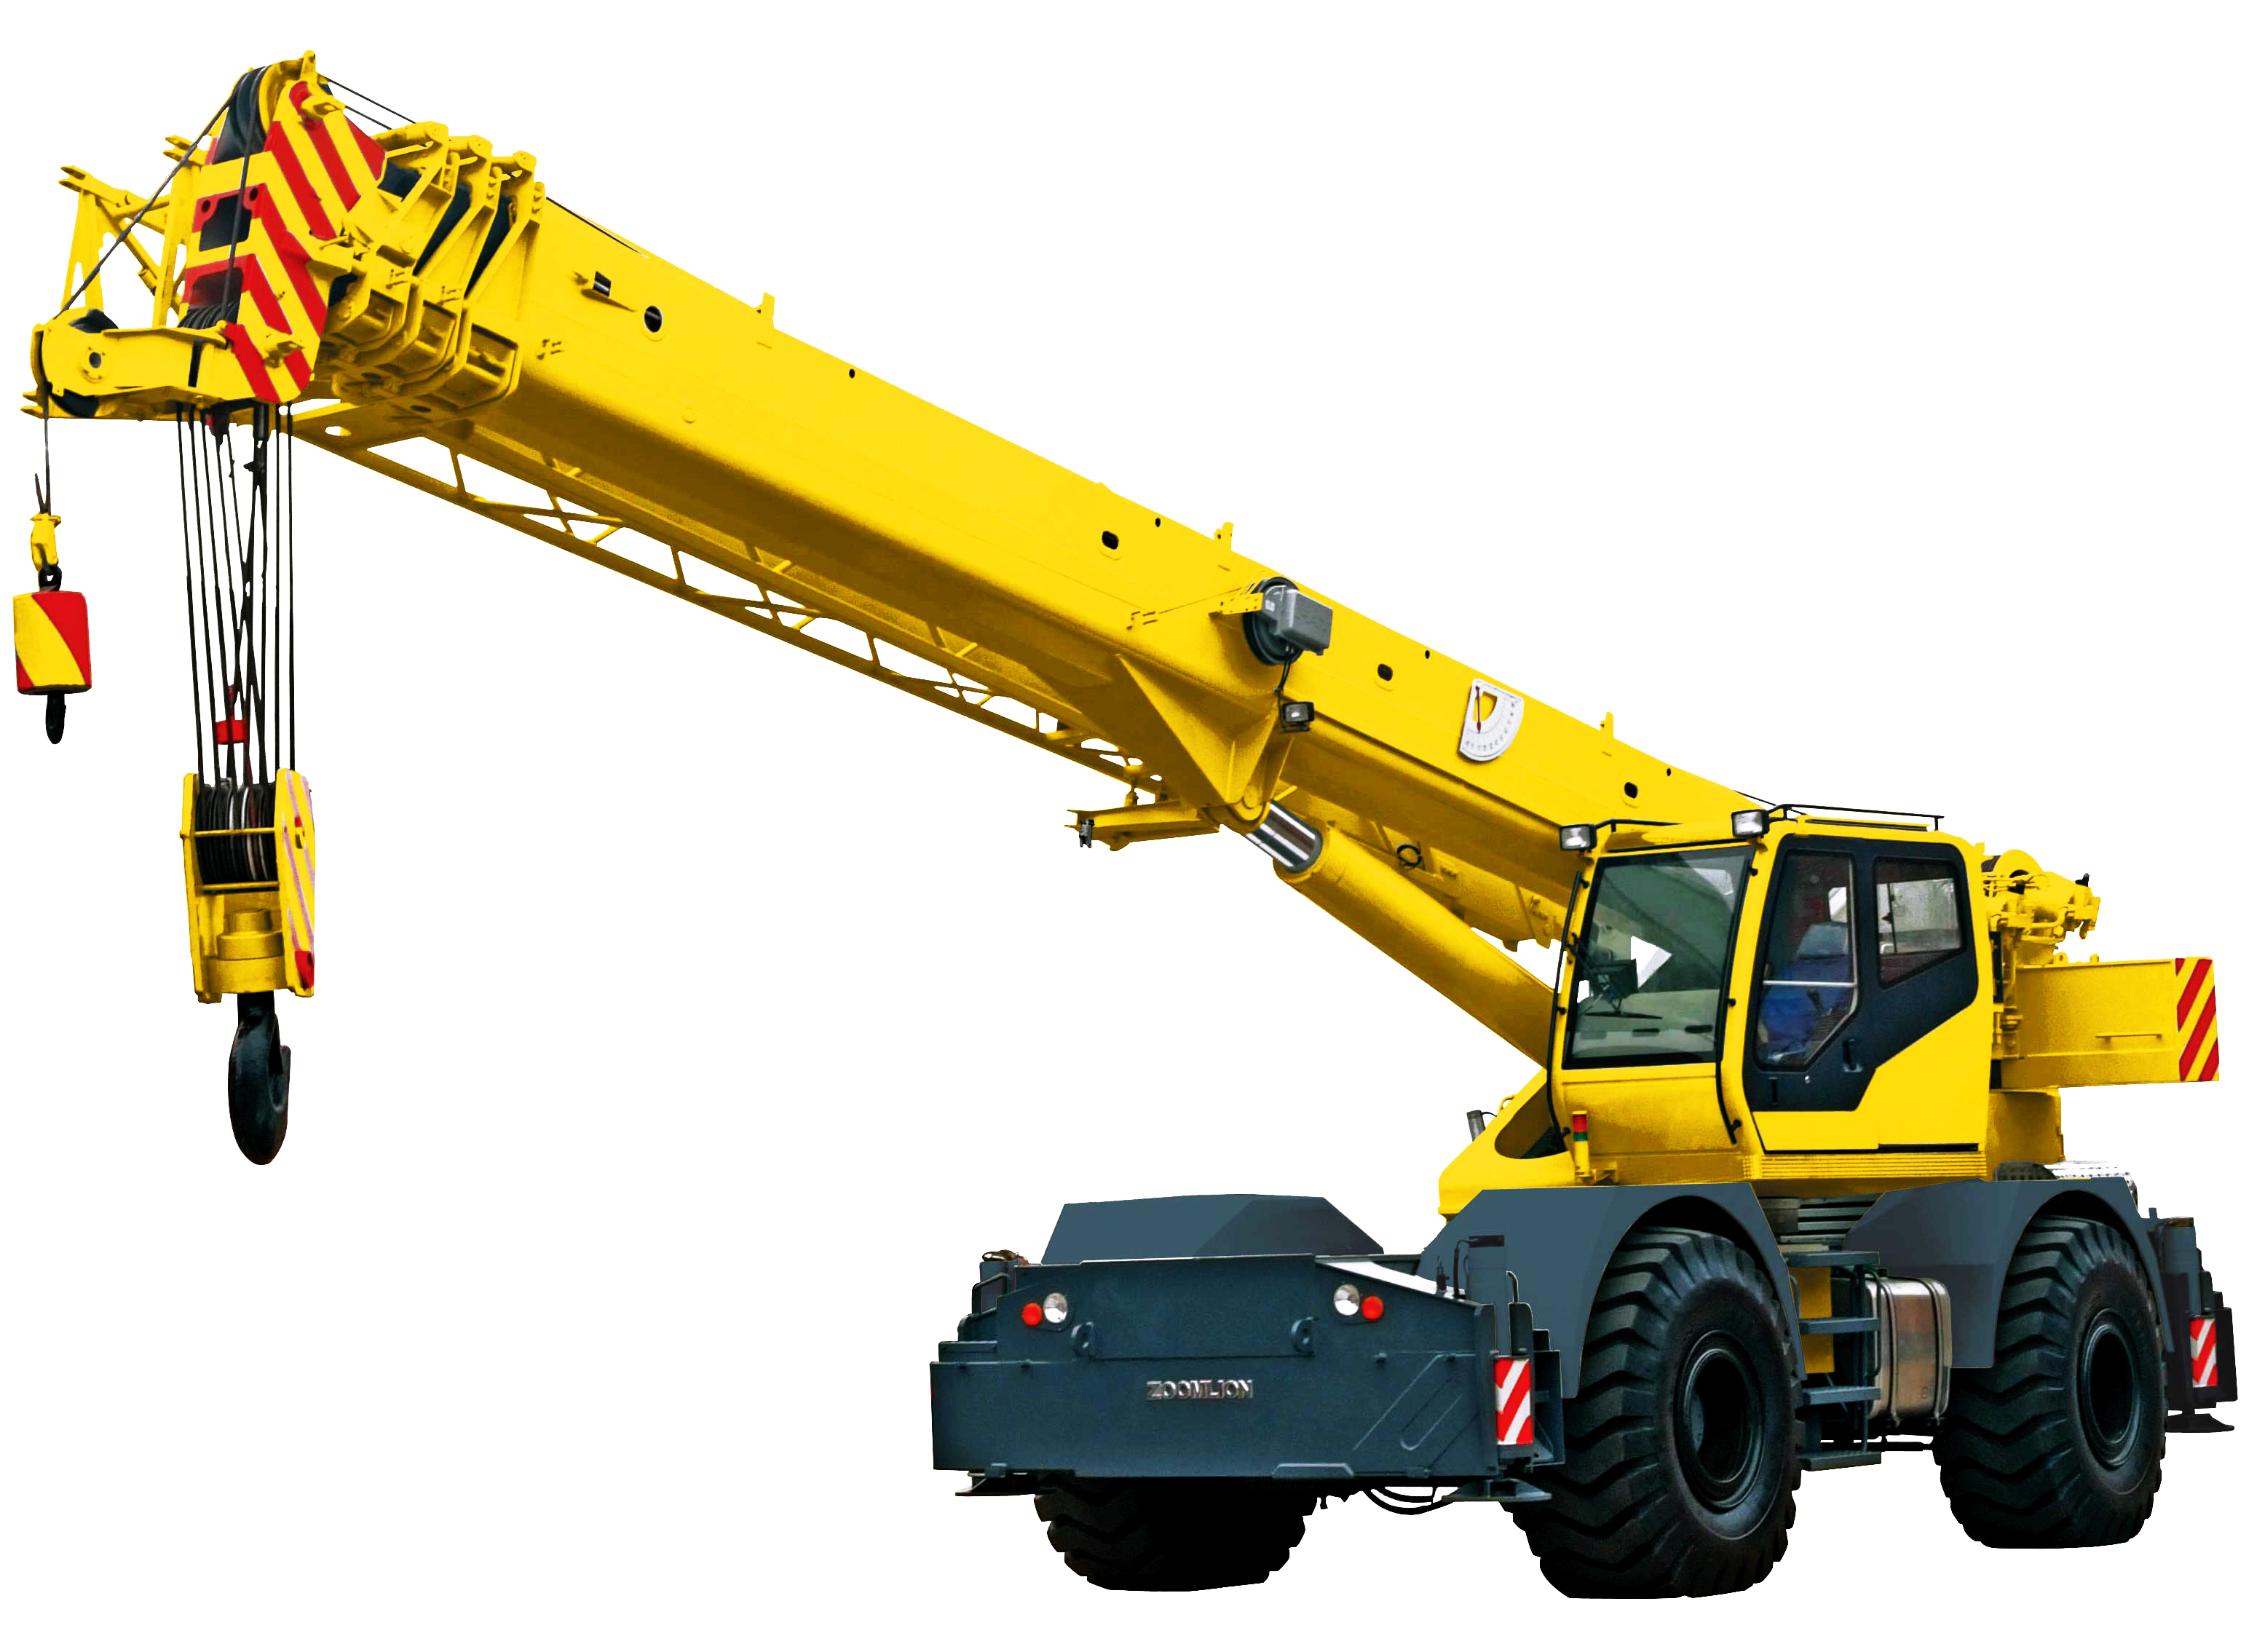 What Makes Construction Companies to Look For Crane Services?